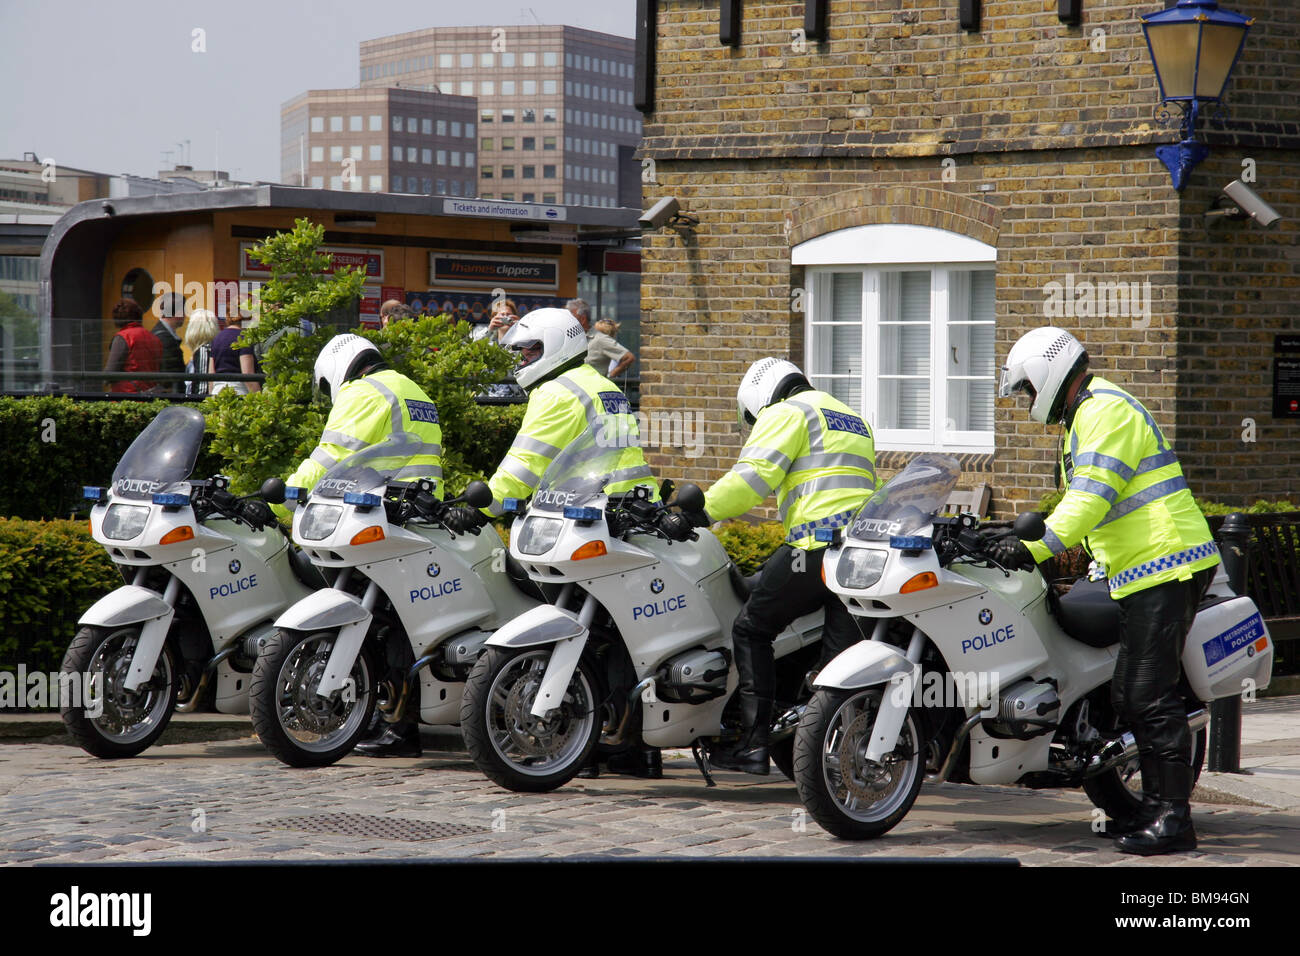 Metropolitan Police Special Escort Group motorcycle outriders. - Stock Image